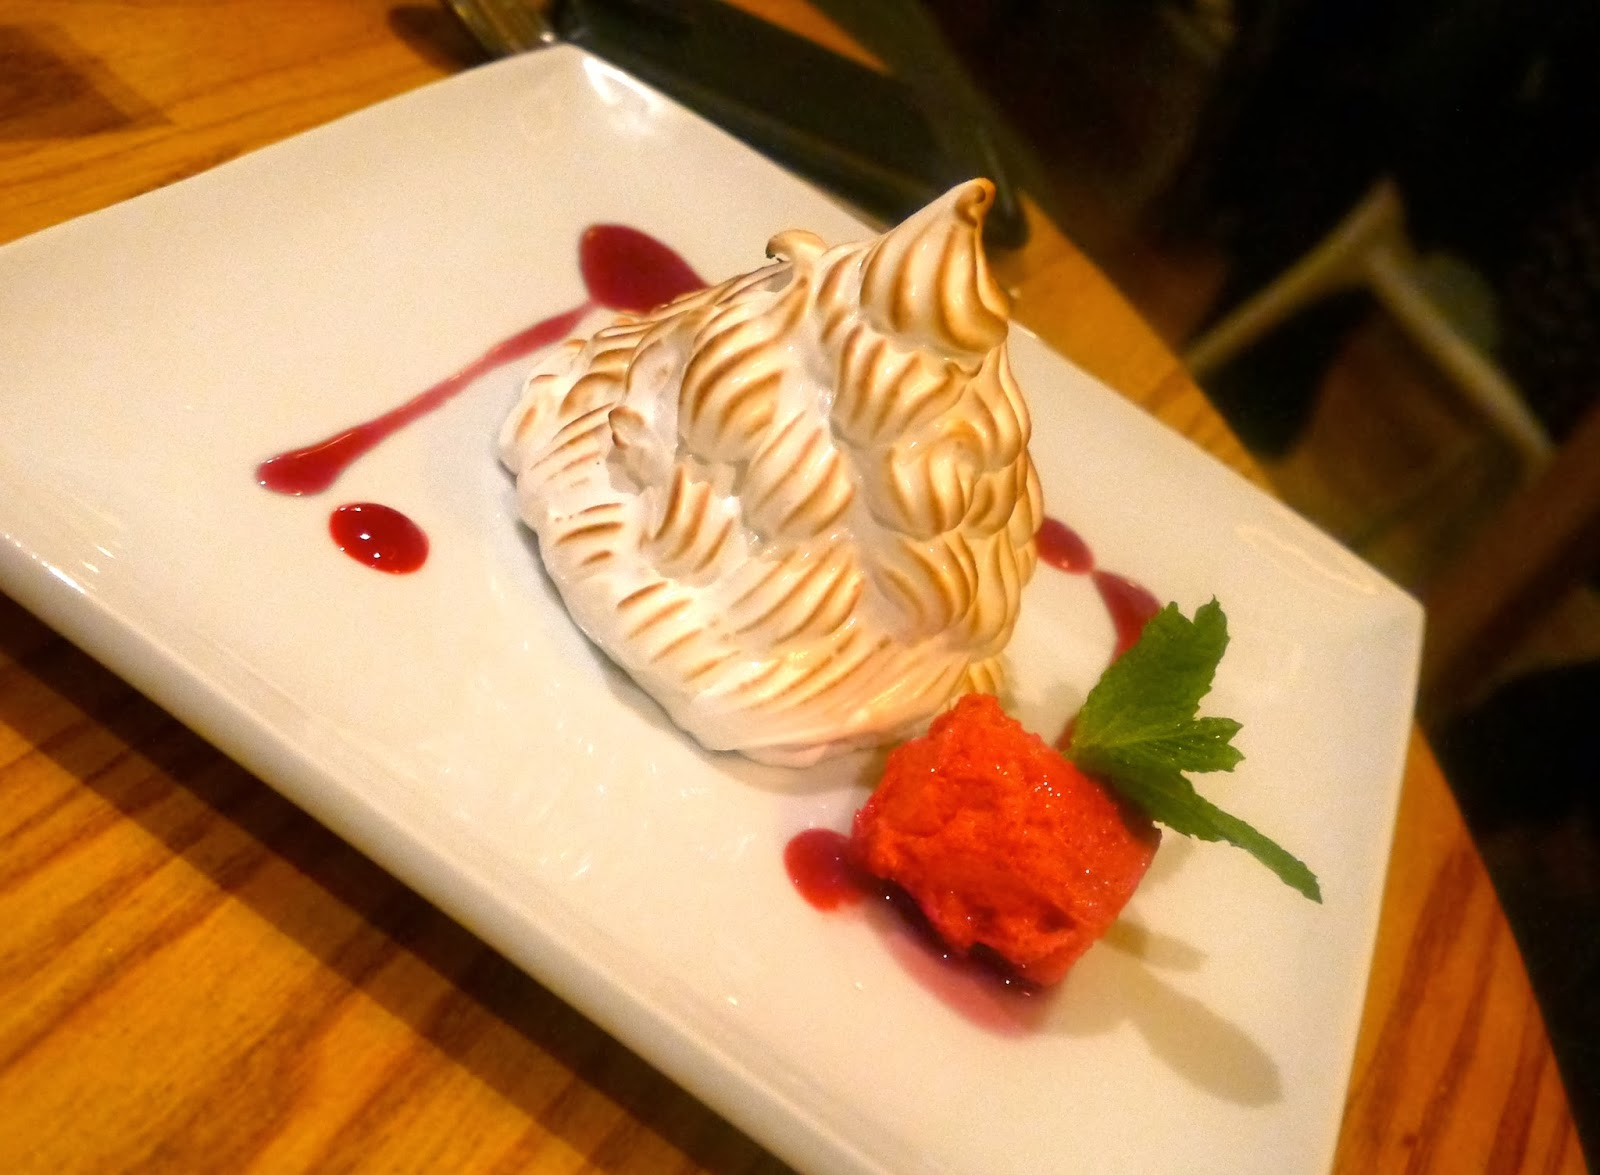 Baked Alaska - well retro!